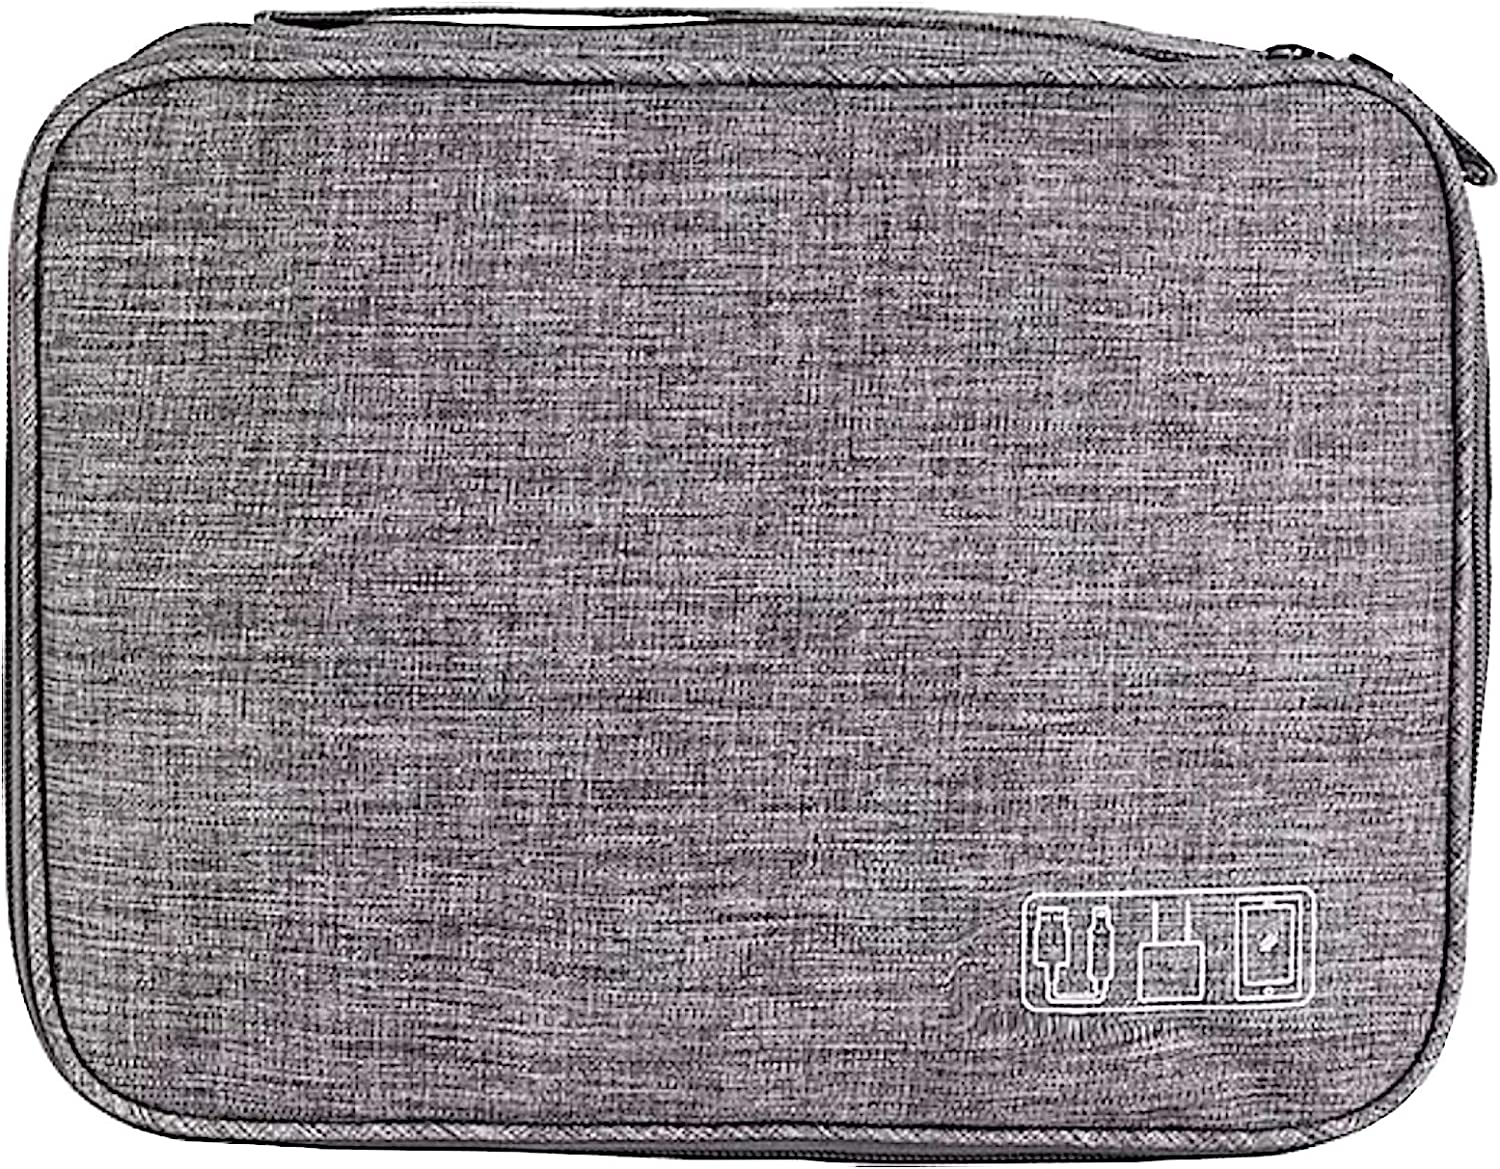 Electronics Organizer, Yanz Electronic Accessories Double Layer Travel Cable Organizer Cord Storage Bag for Cables, iPad Mini,Power Bank, USB Flash Drive and More Gray